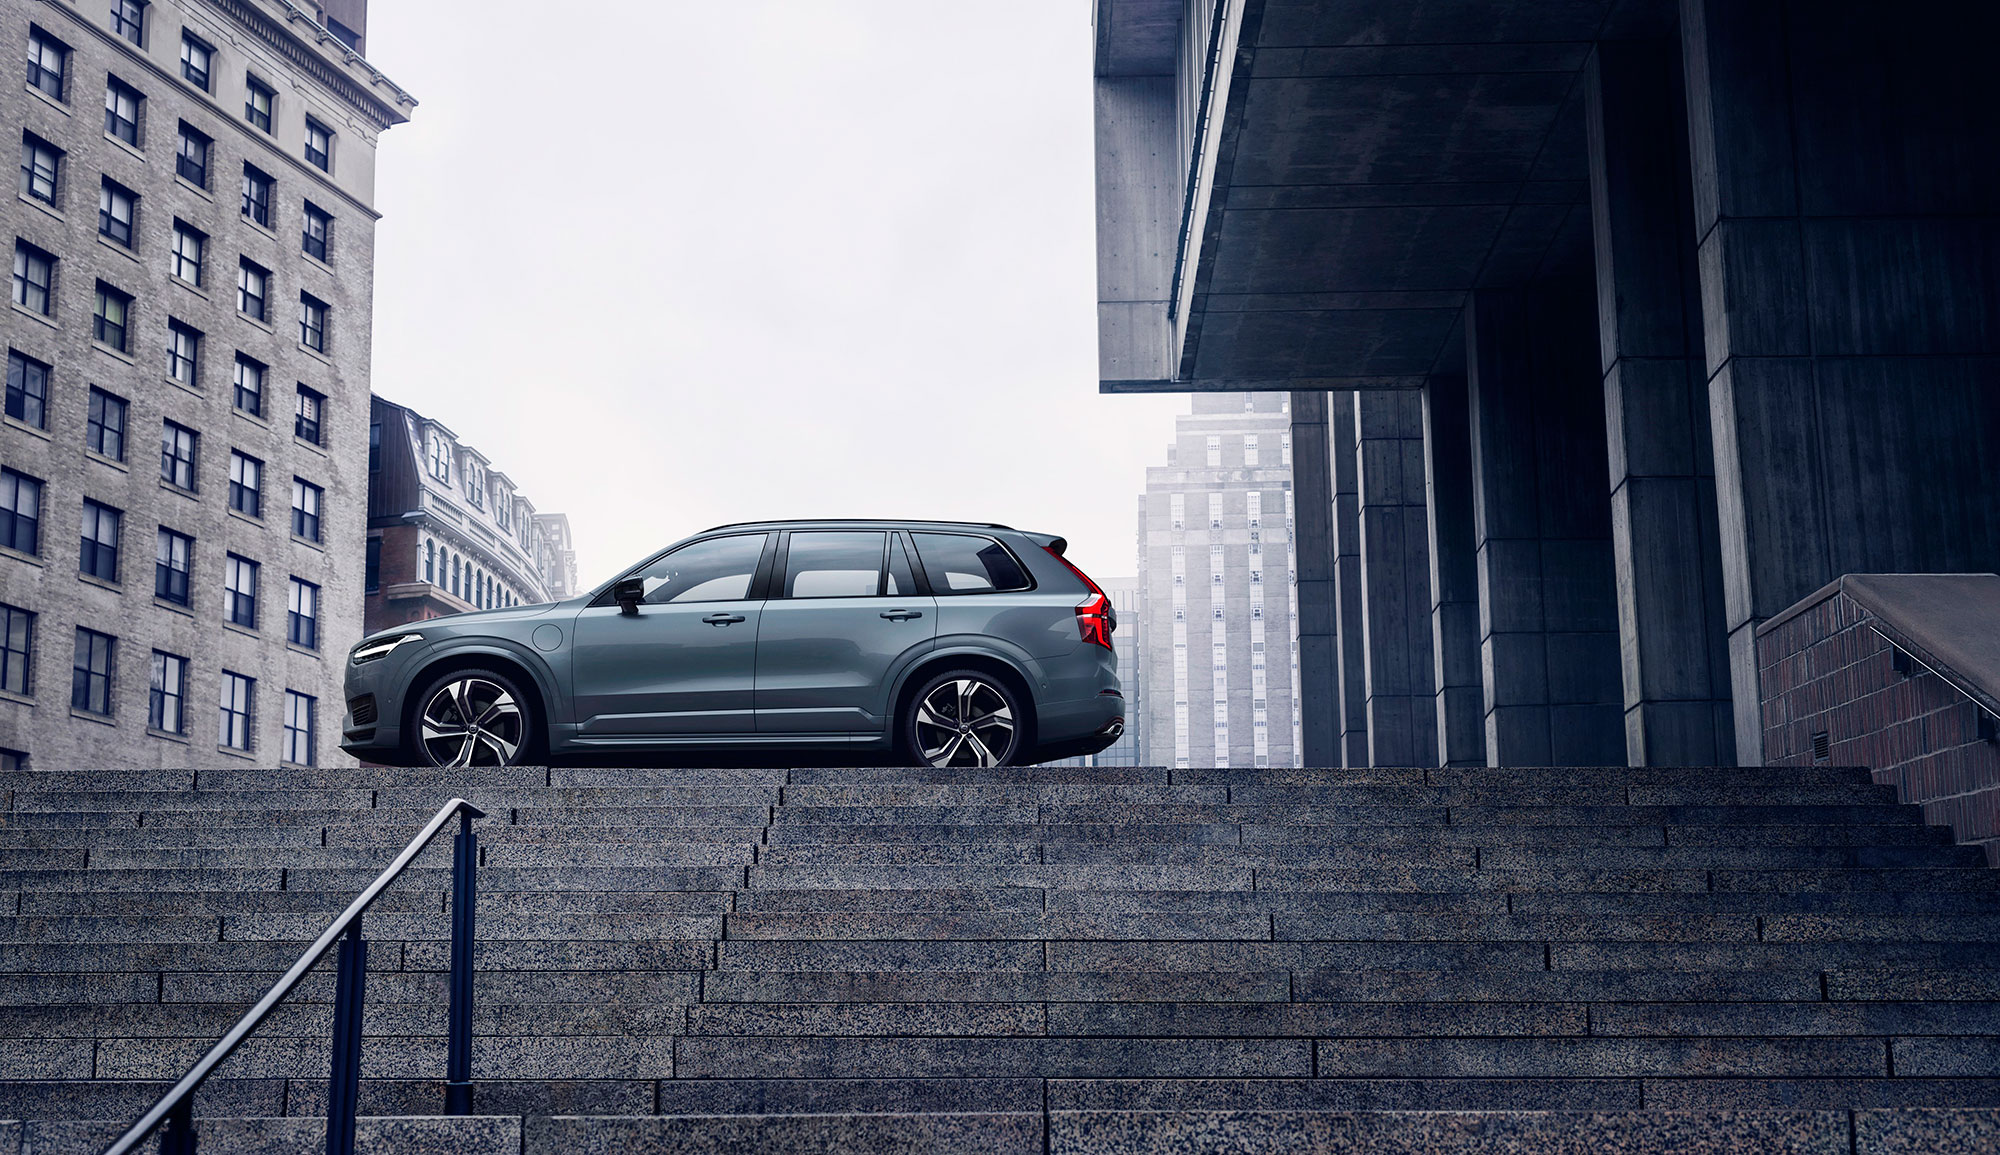 Volvo Refreshes Their Xc90 Suv Thecanadiantechie